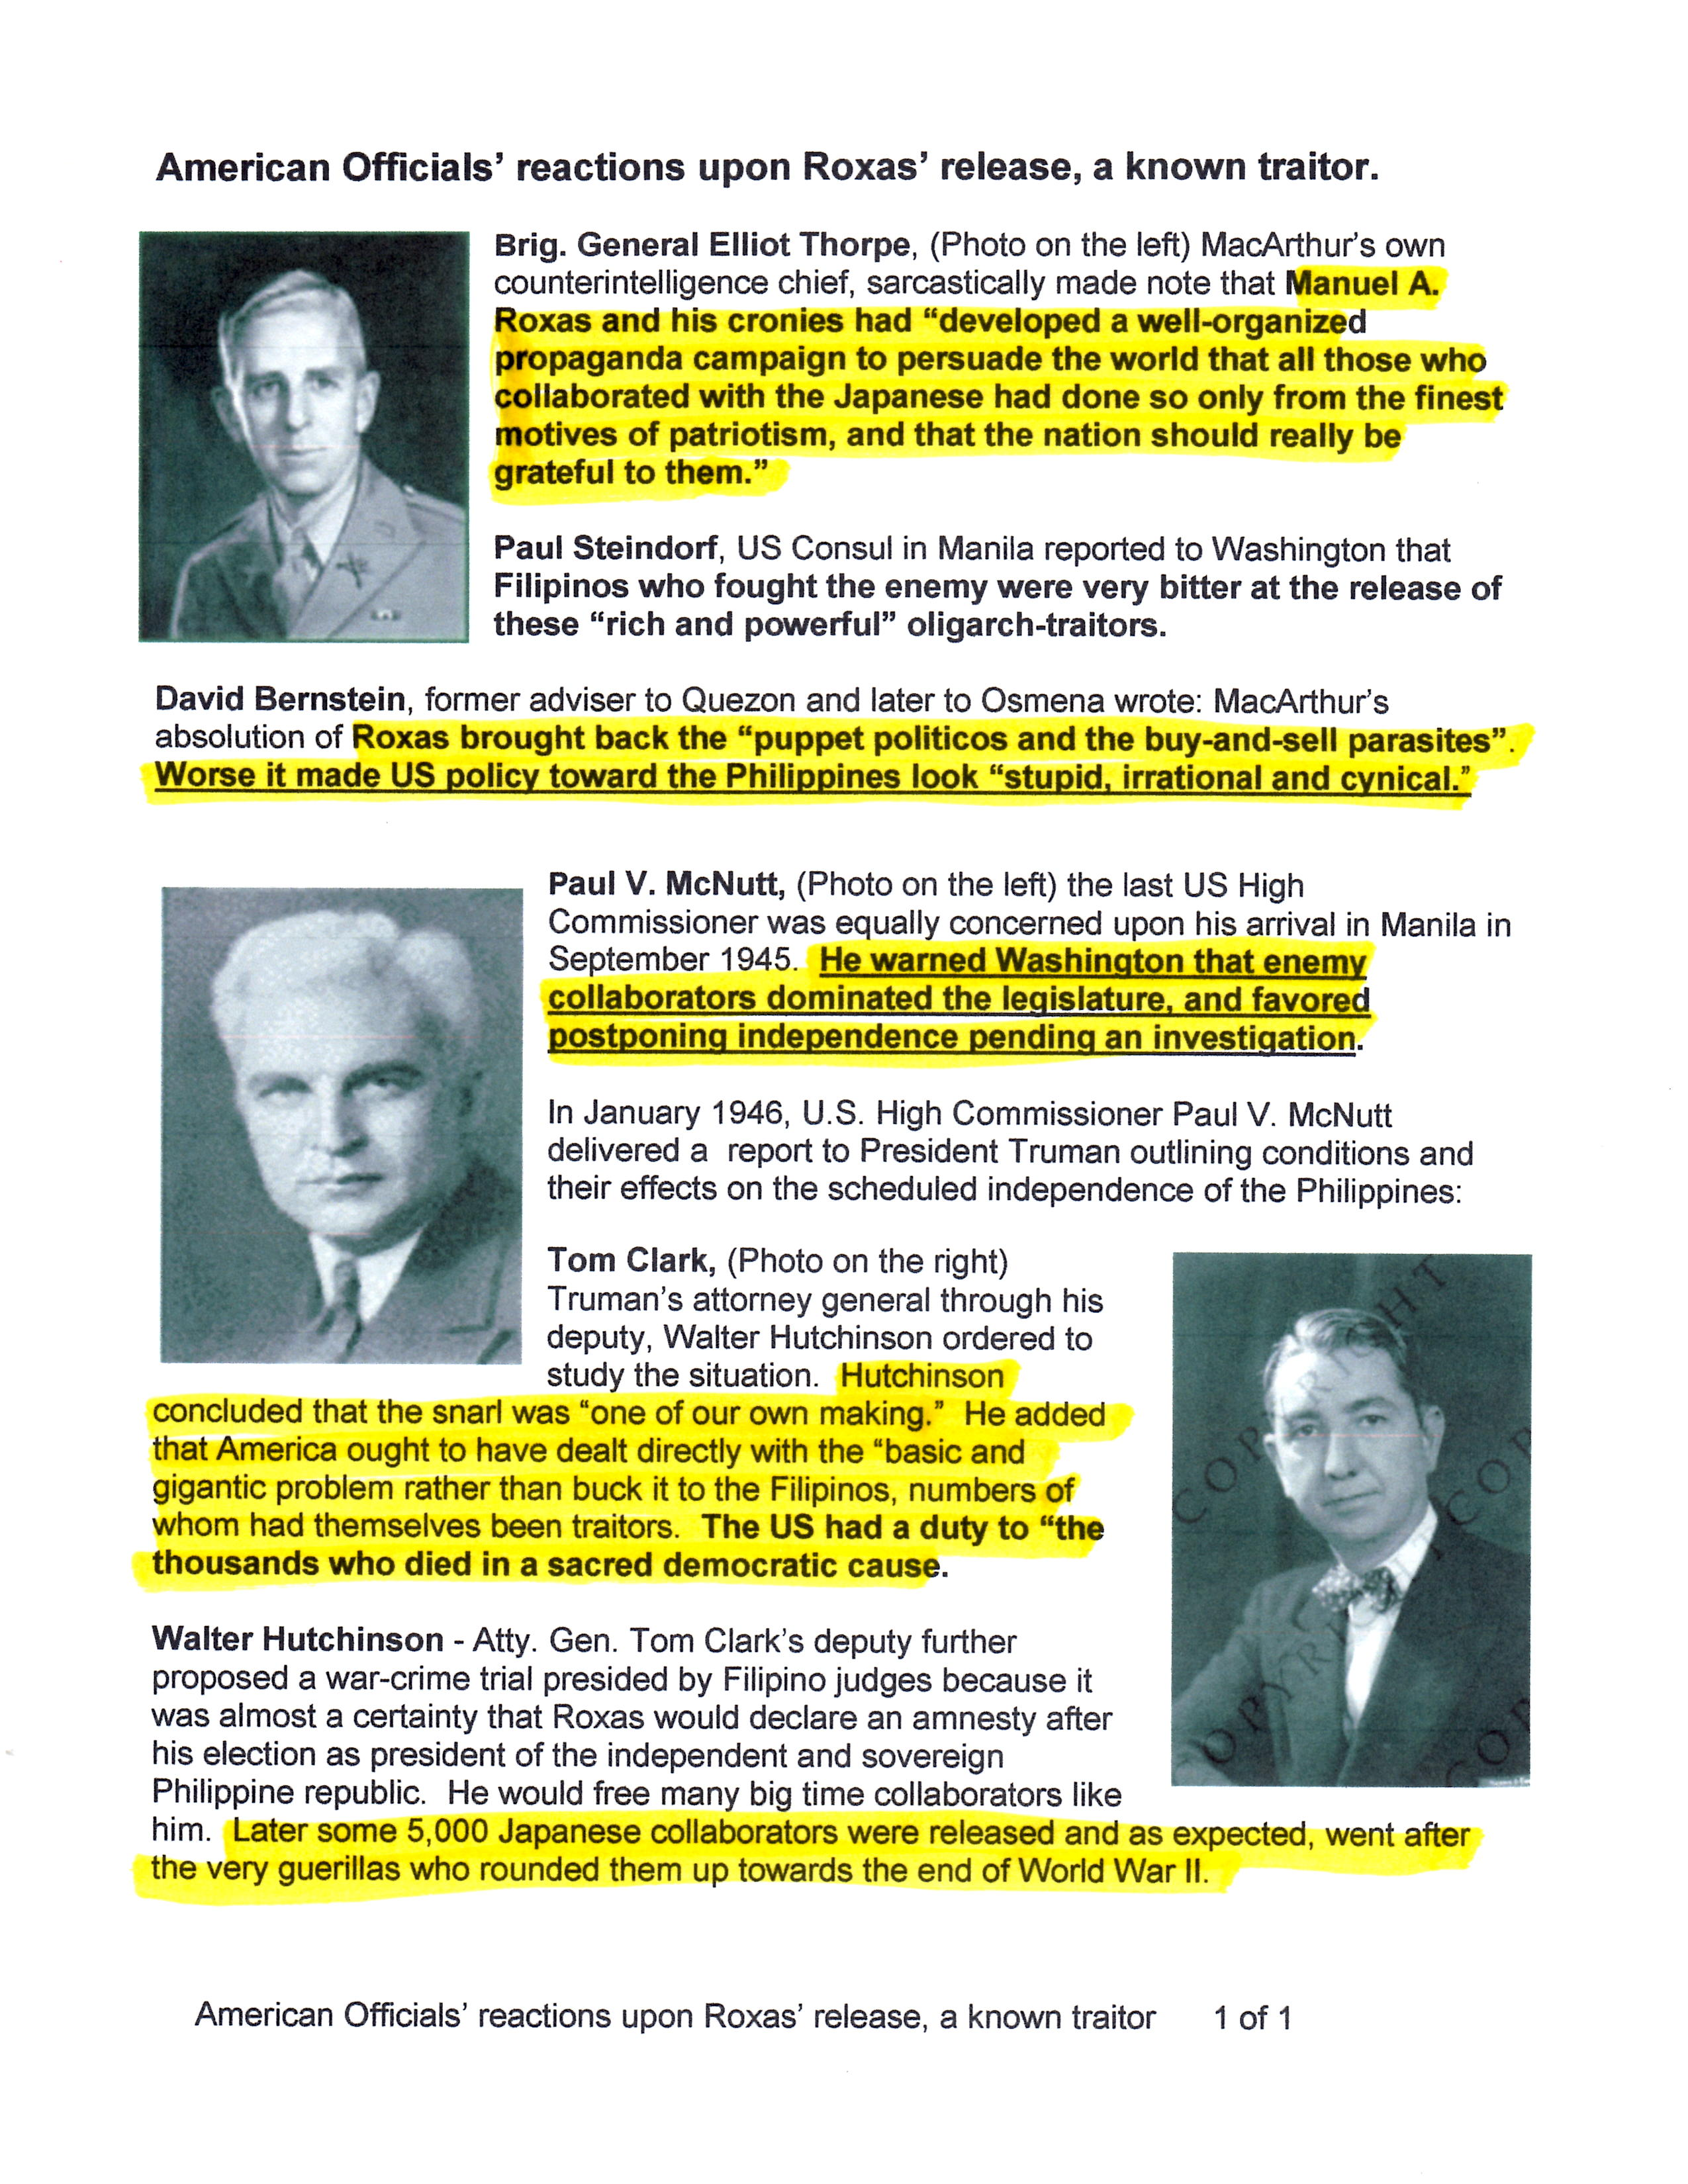 U.S. High Commissioner to the Philippines Paul V. McNutt wanted to postpone giving the Philippines independence. However on 22 Oct. 1946 the U.S. Senate ratified the Treaty of Manila and turned the former U.S. territory over to oligarch-traitors whose grandchildren are still in power to this day.